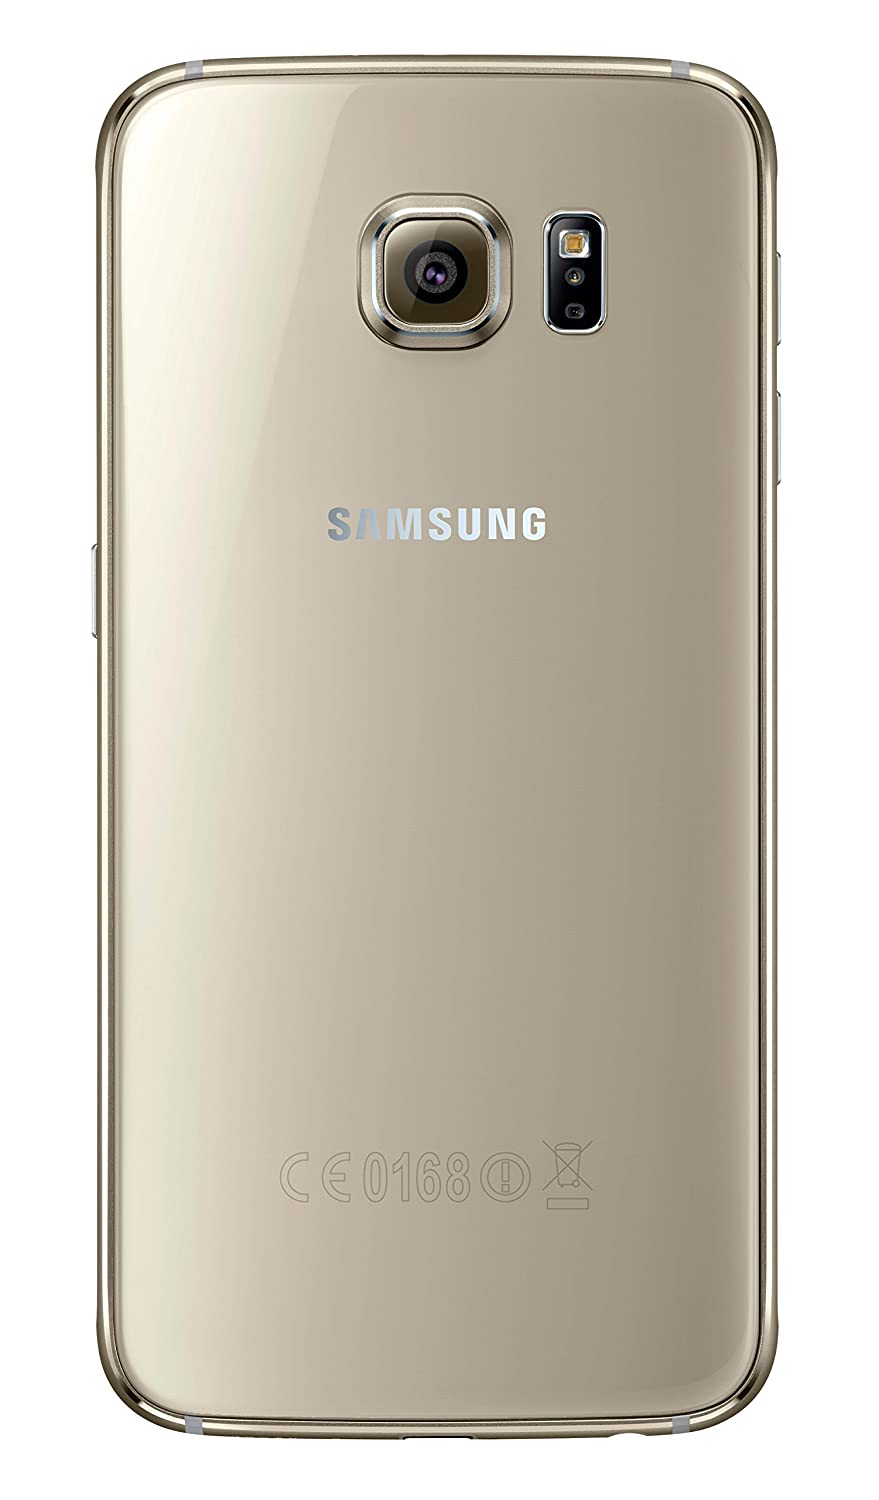 People are selling samsung galaxy s6 clones - Samsung Galaxy S6 G920 Sim Free 32gb Smartphone Gold Amazon Co Uk Electronics